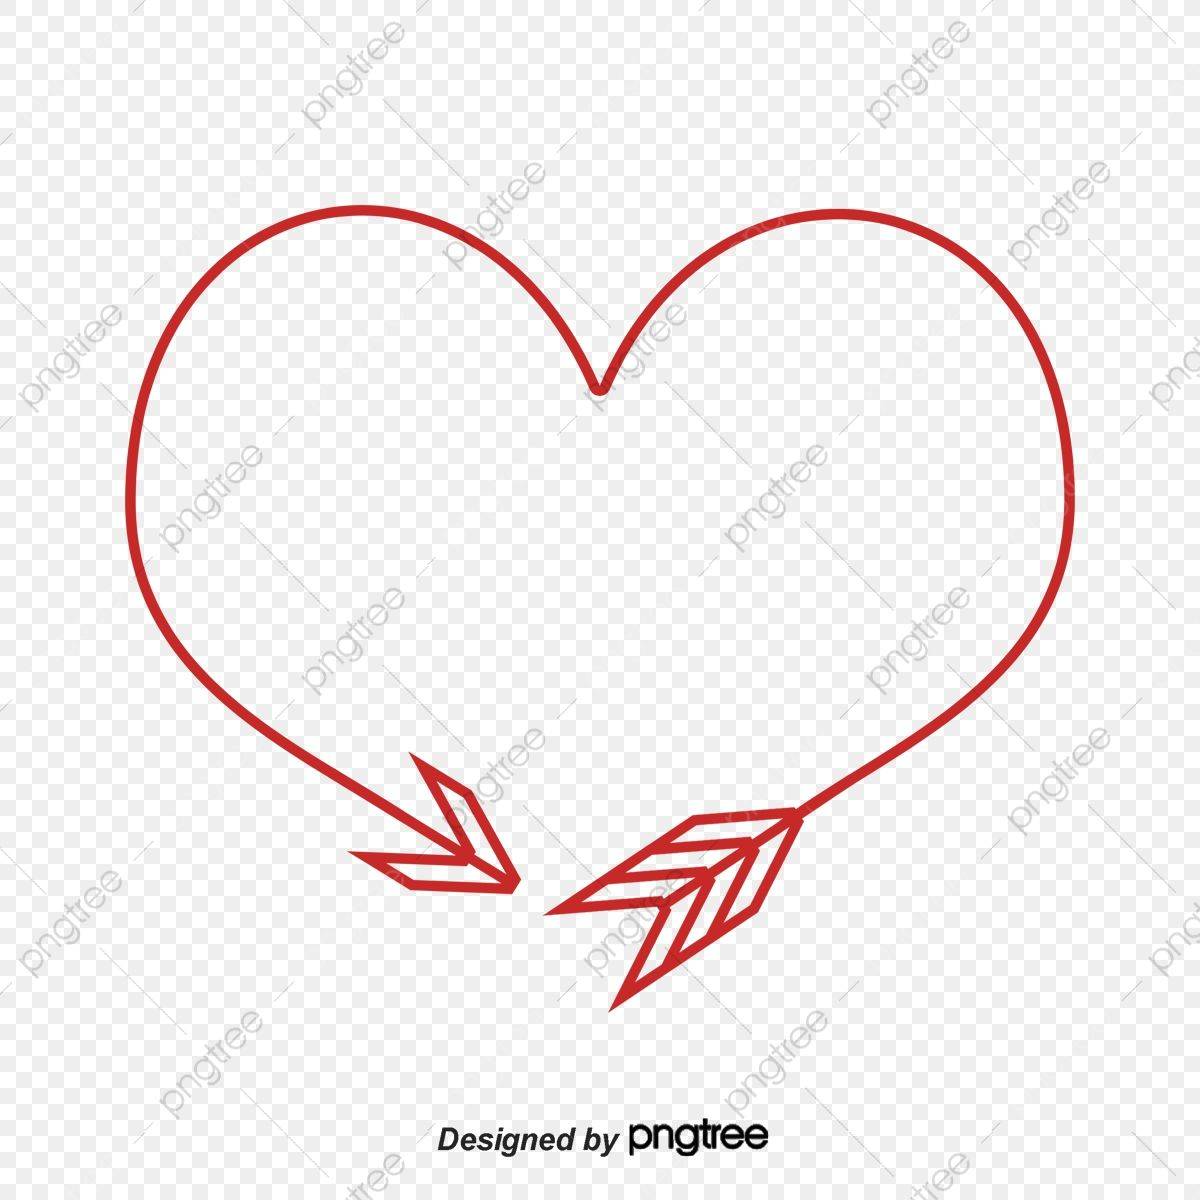 Arrow Hearts Heart Clipart A Circle Arrow Png Transparent Clipart Image And Psd File For Free Download Heart With Arrow Clip Art Clipart Images